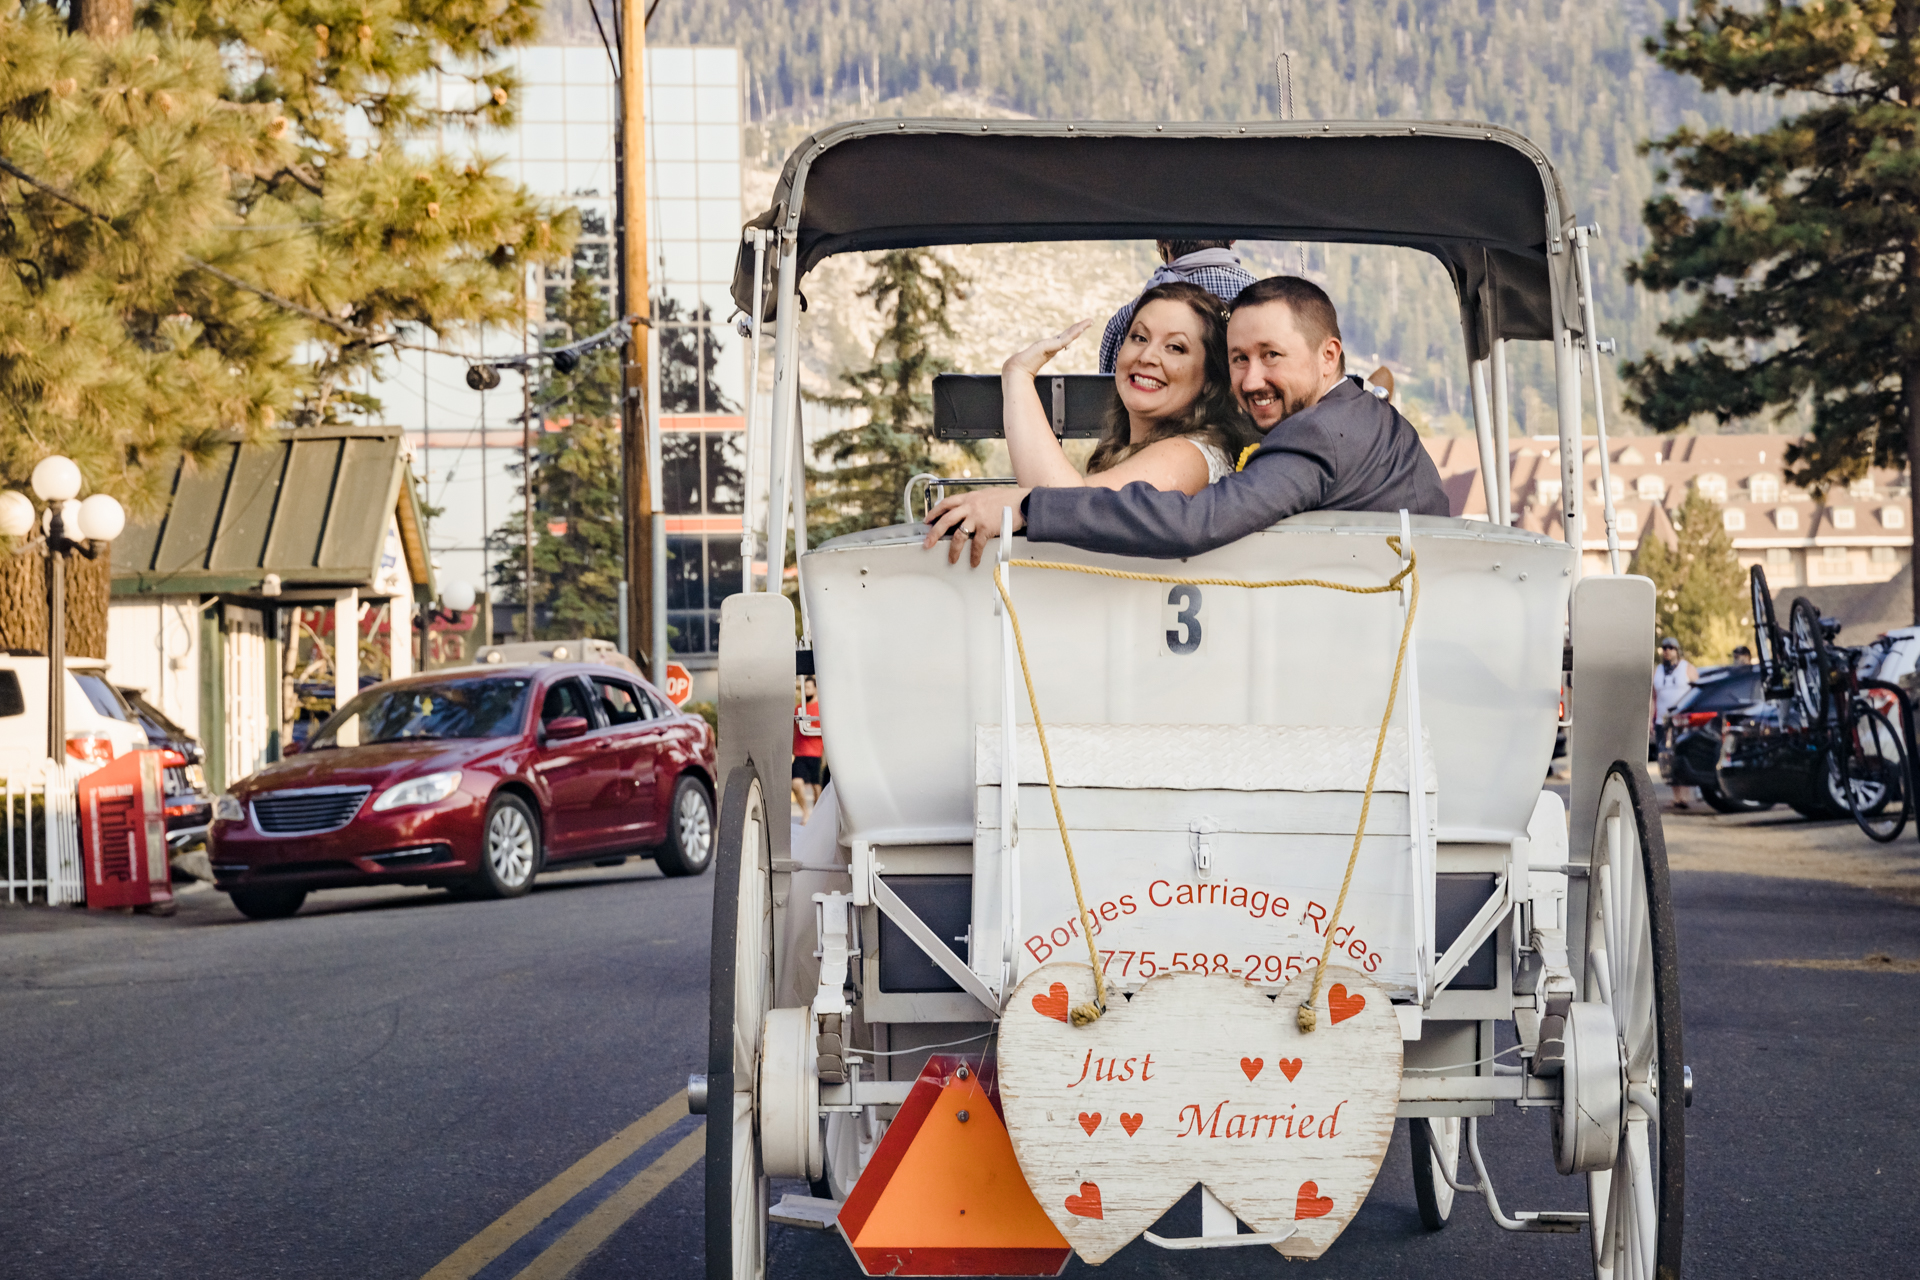 Lakeside Beach Wedding Venue Pic - South Lake Tahoe | The newlyweds wave from their horse-drawn carriage